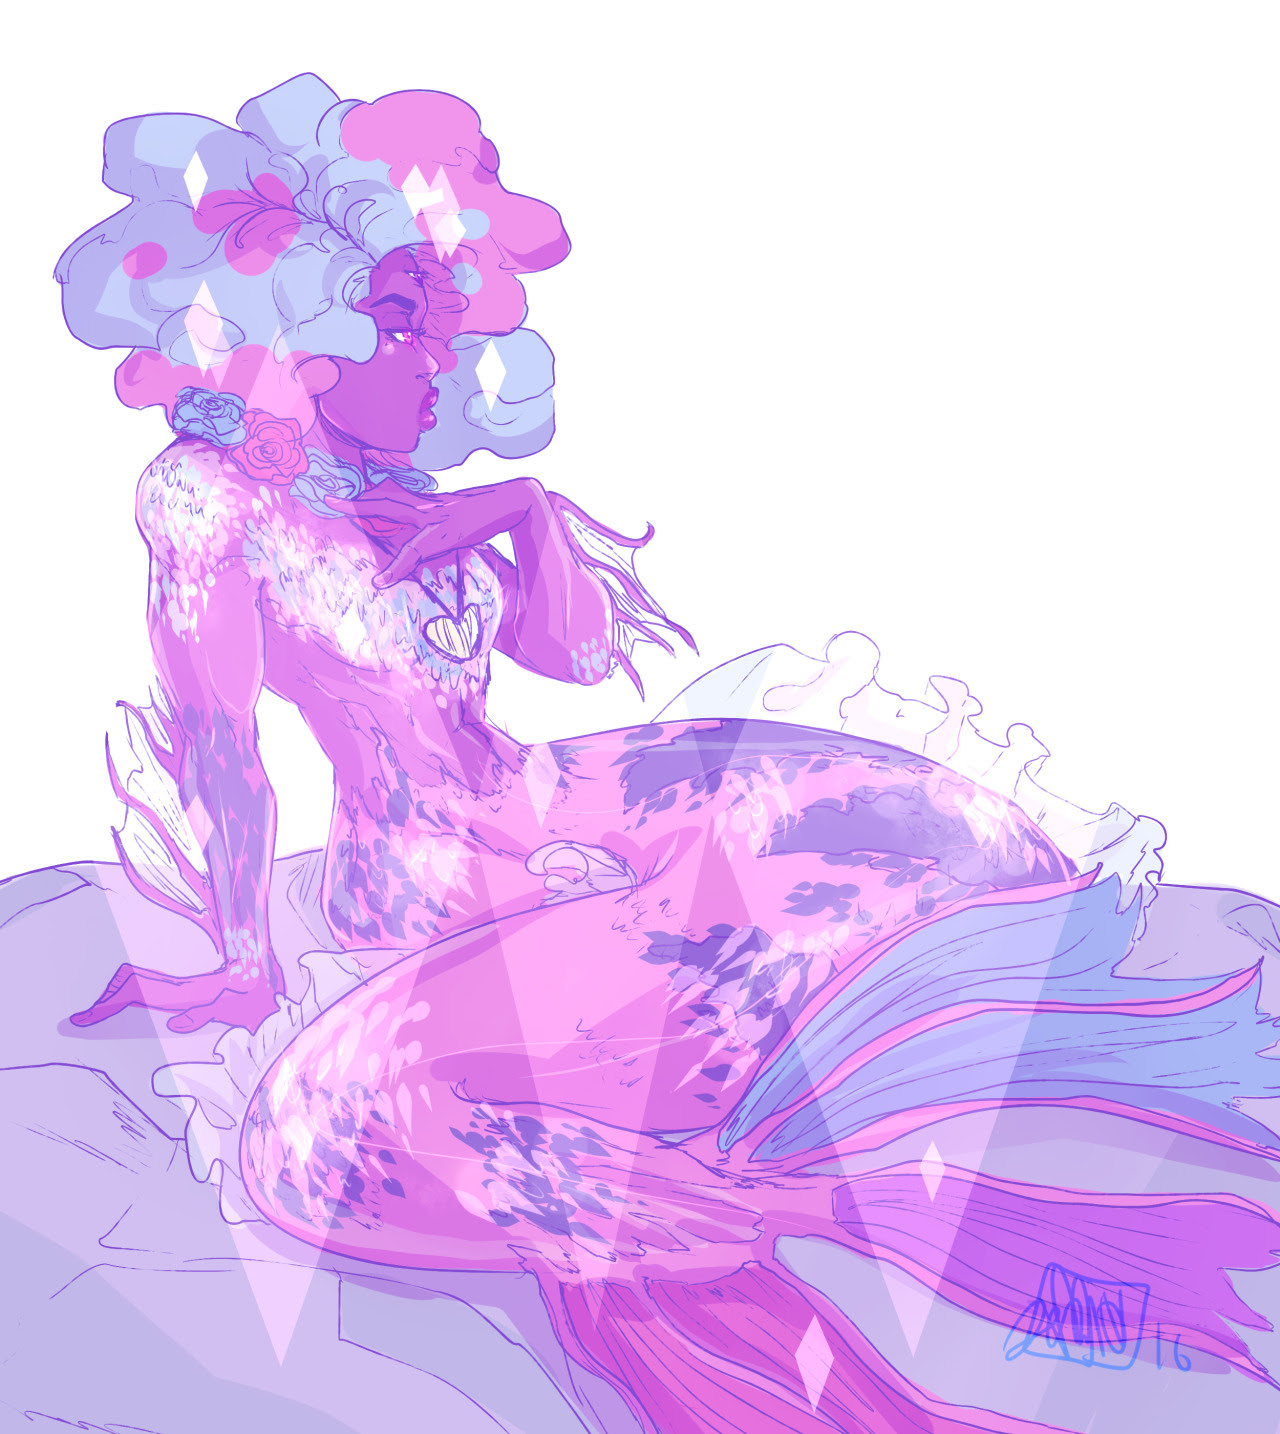 Jumping in on the Mermaid fusion bandwagon started by @l-sula-l and @atta by (of course) doing a Garnet one!